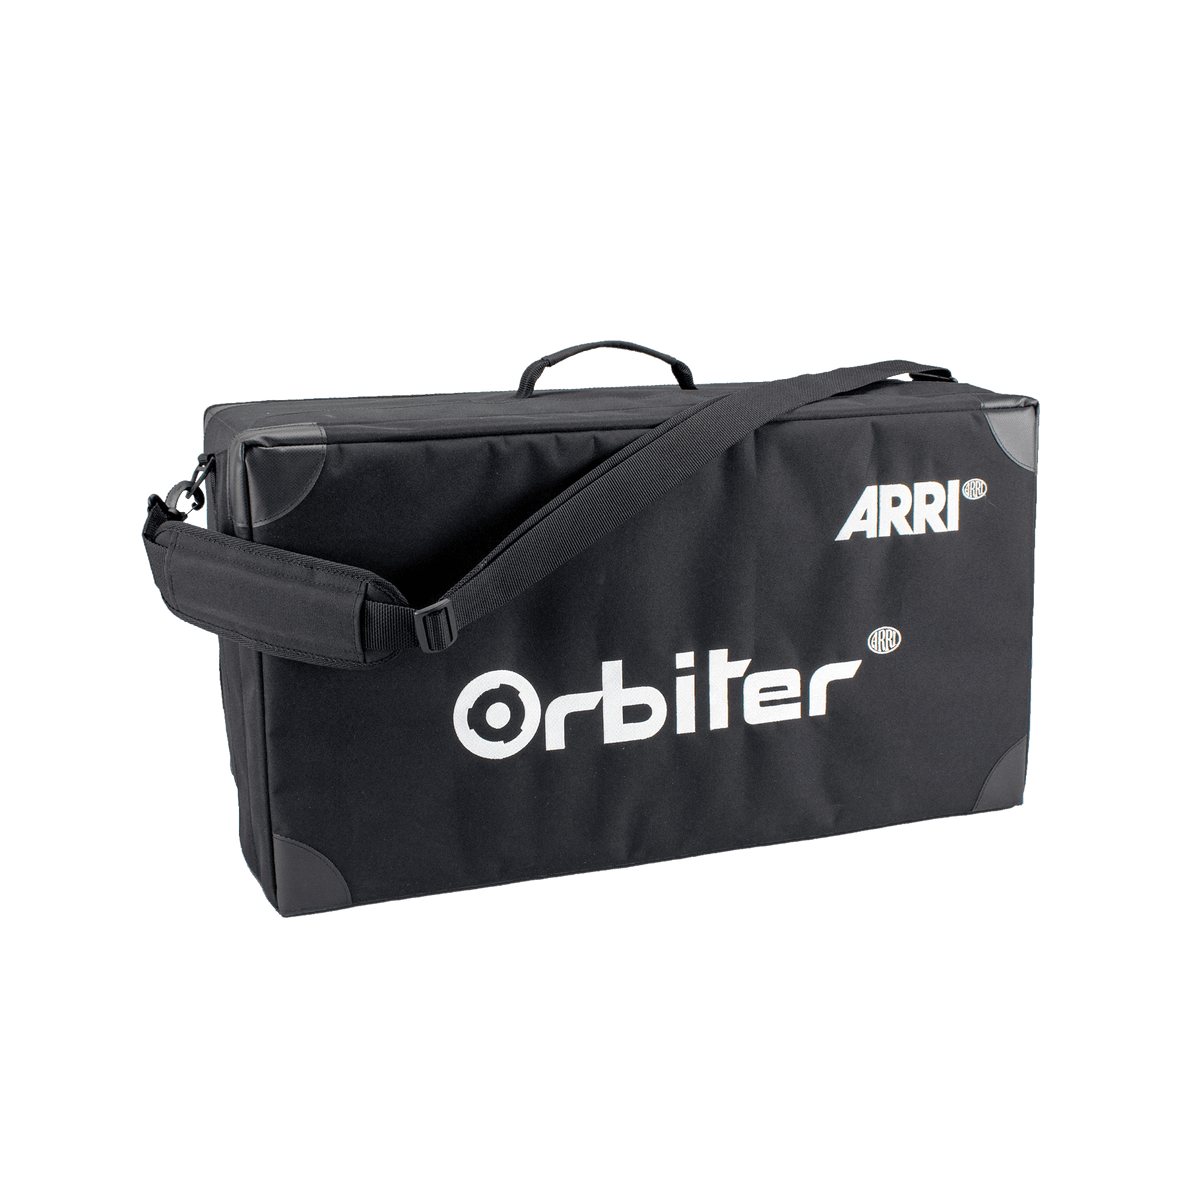 ARRI Orbiter Bag for Optics